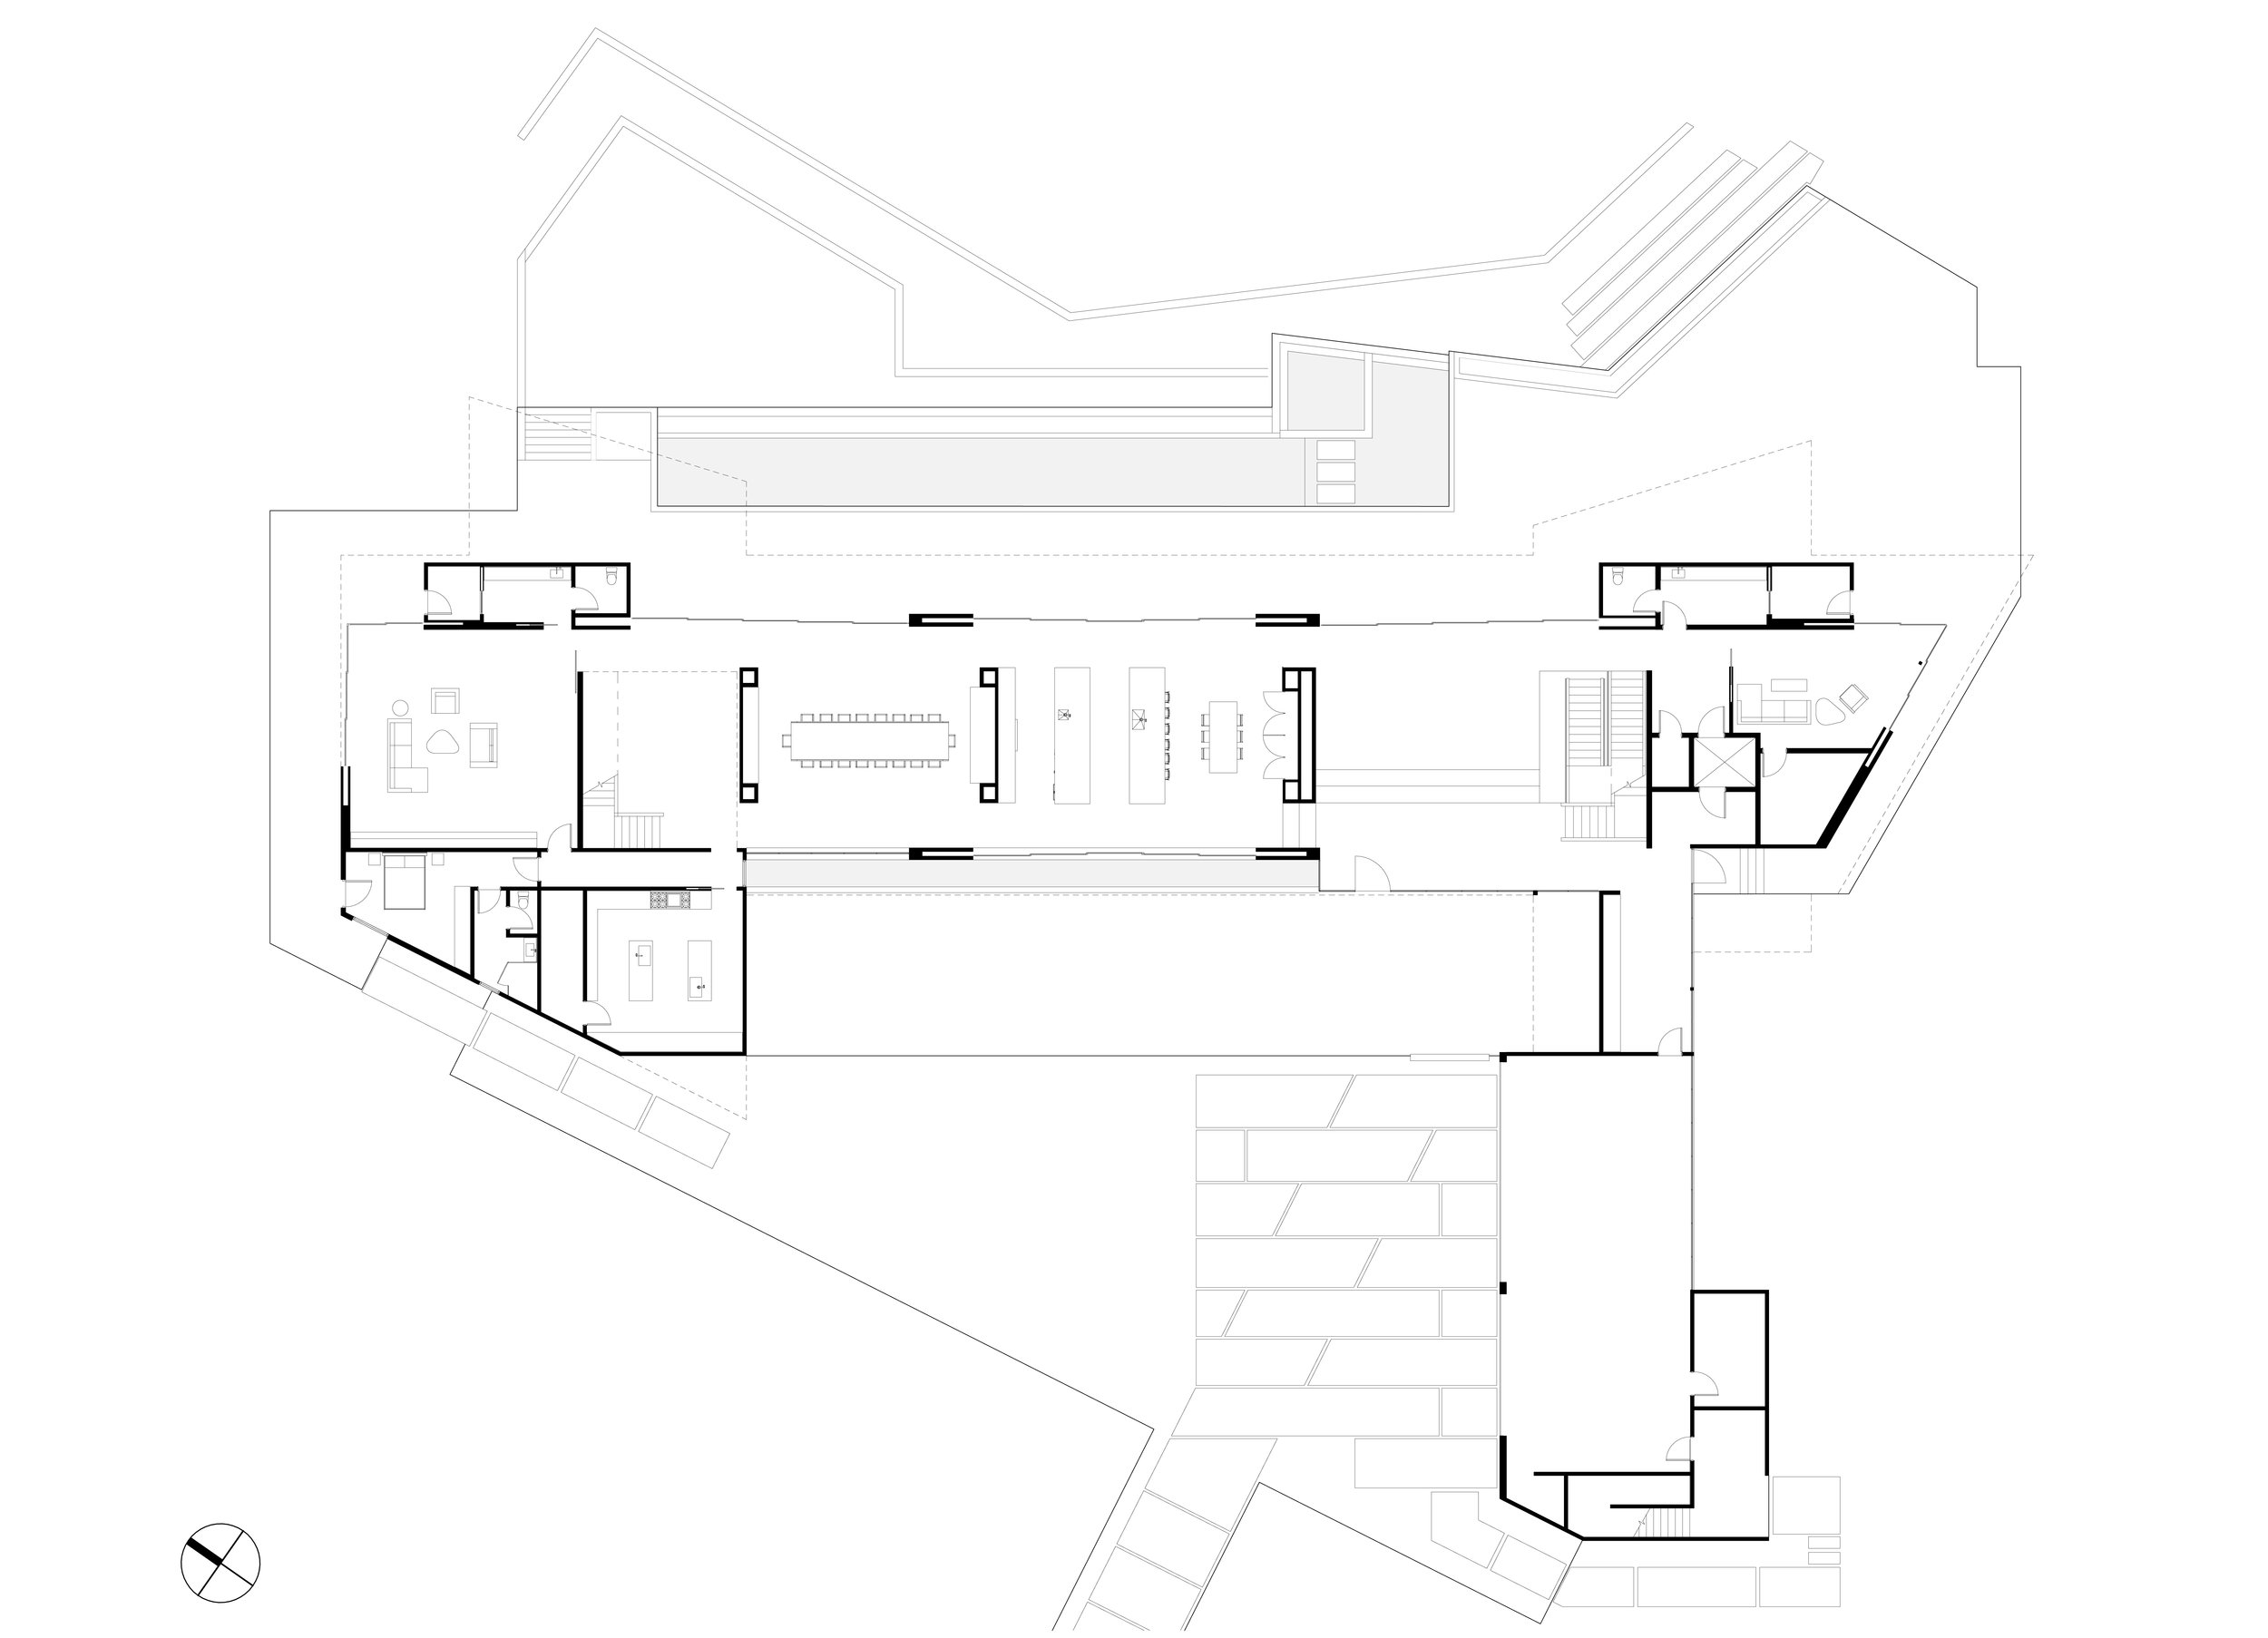 1966 CARLA RIDGE_ENTRY LEVEL PLAN.jpg